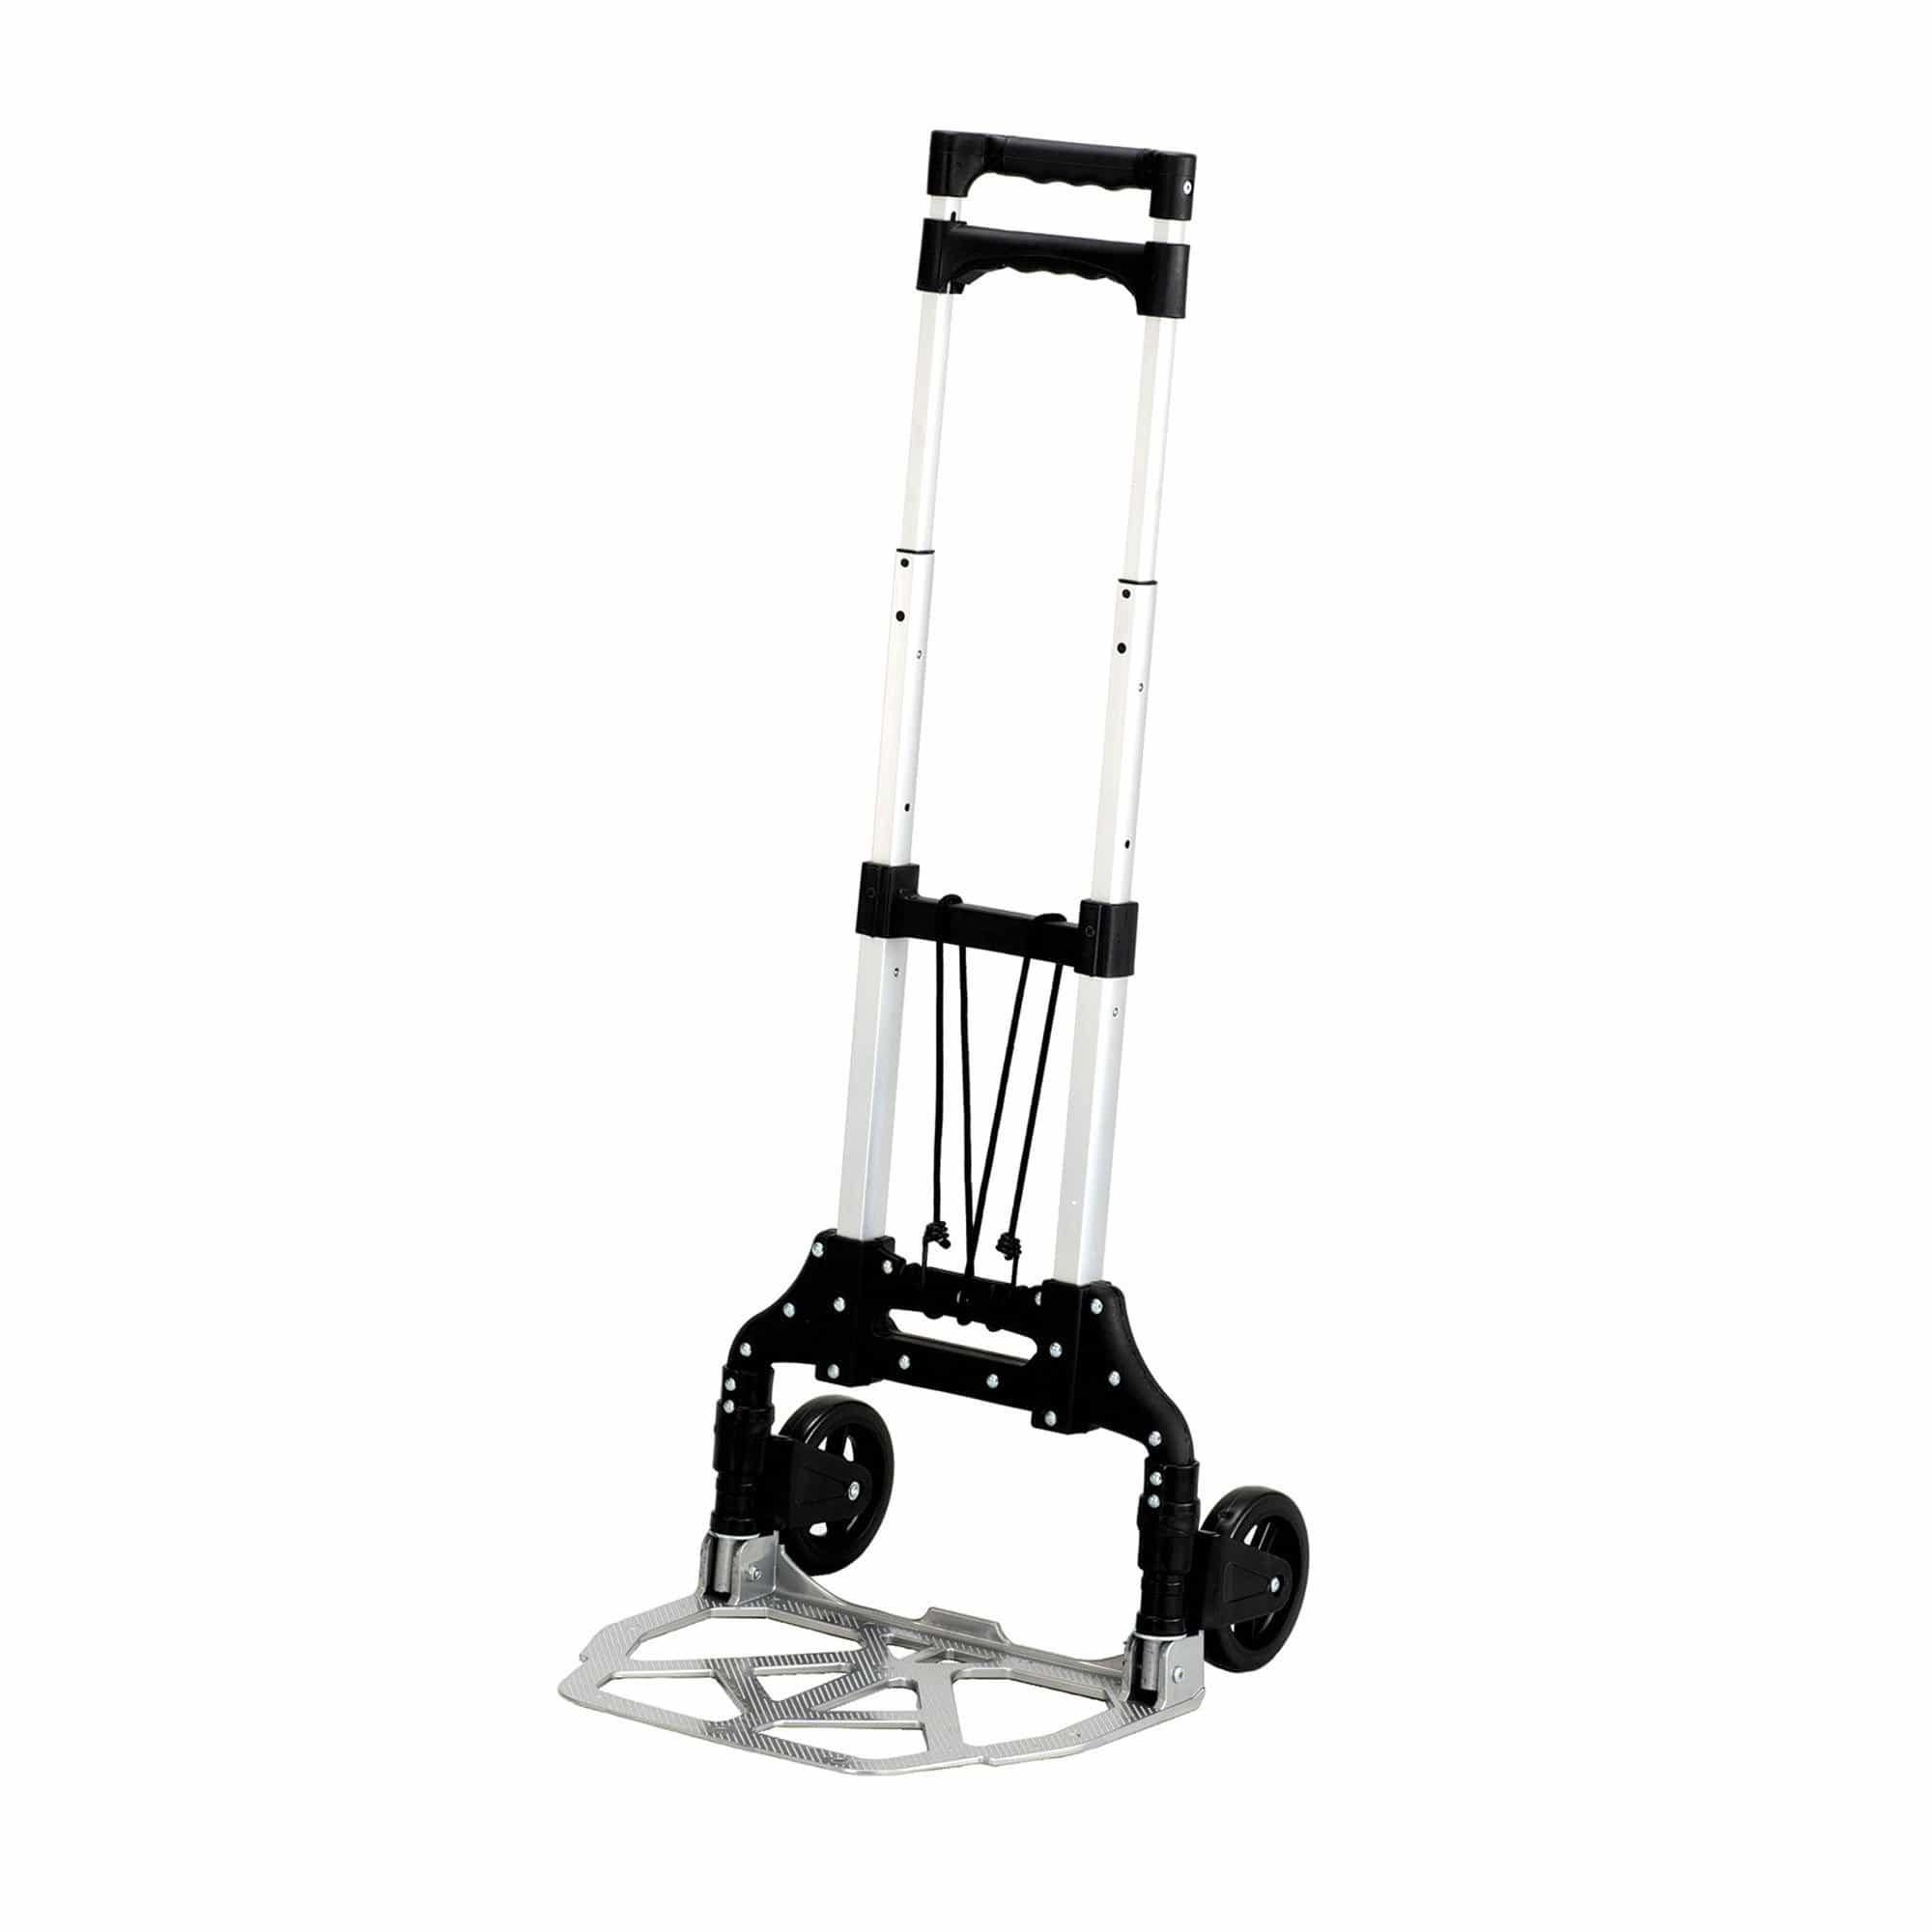 bedinhome - 4049NC Safco Stow & Go black light weight aluminum frame folding hand Cart - Safco - Folding Hand Trucks